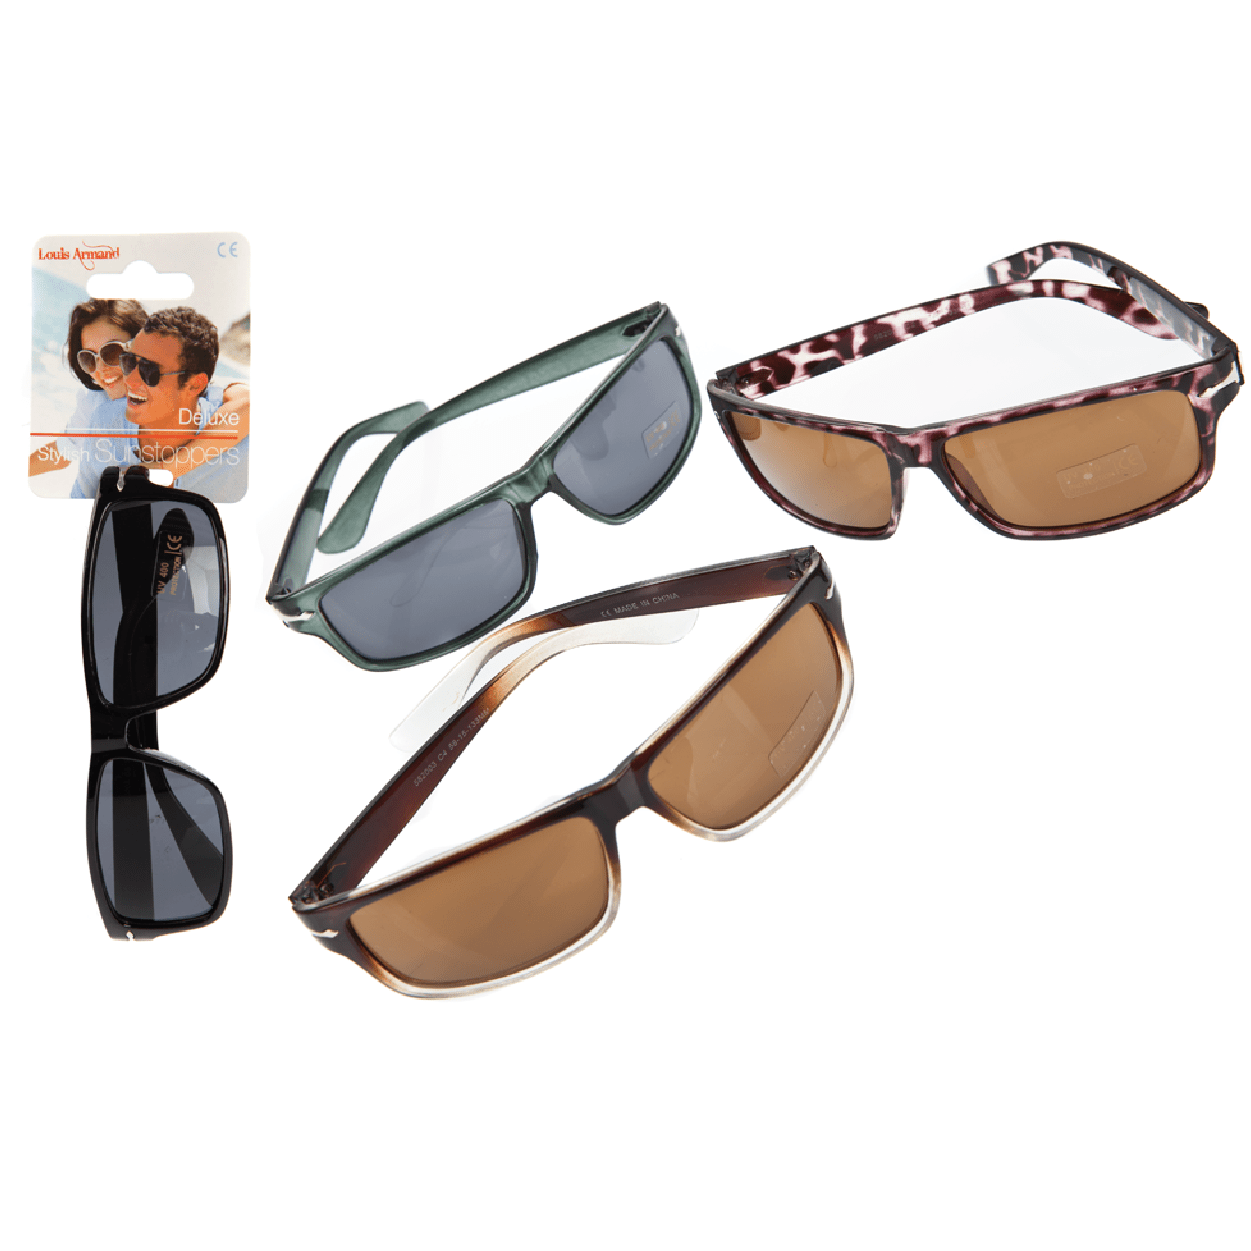 Unisex Classic Style Sunglasses - Assorted Designs - only5pounds.com